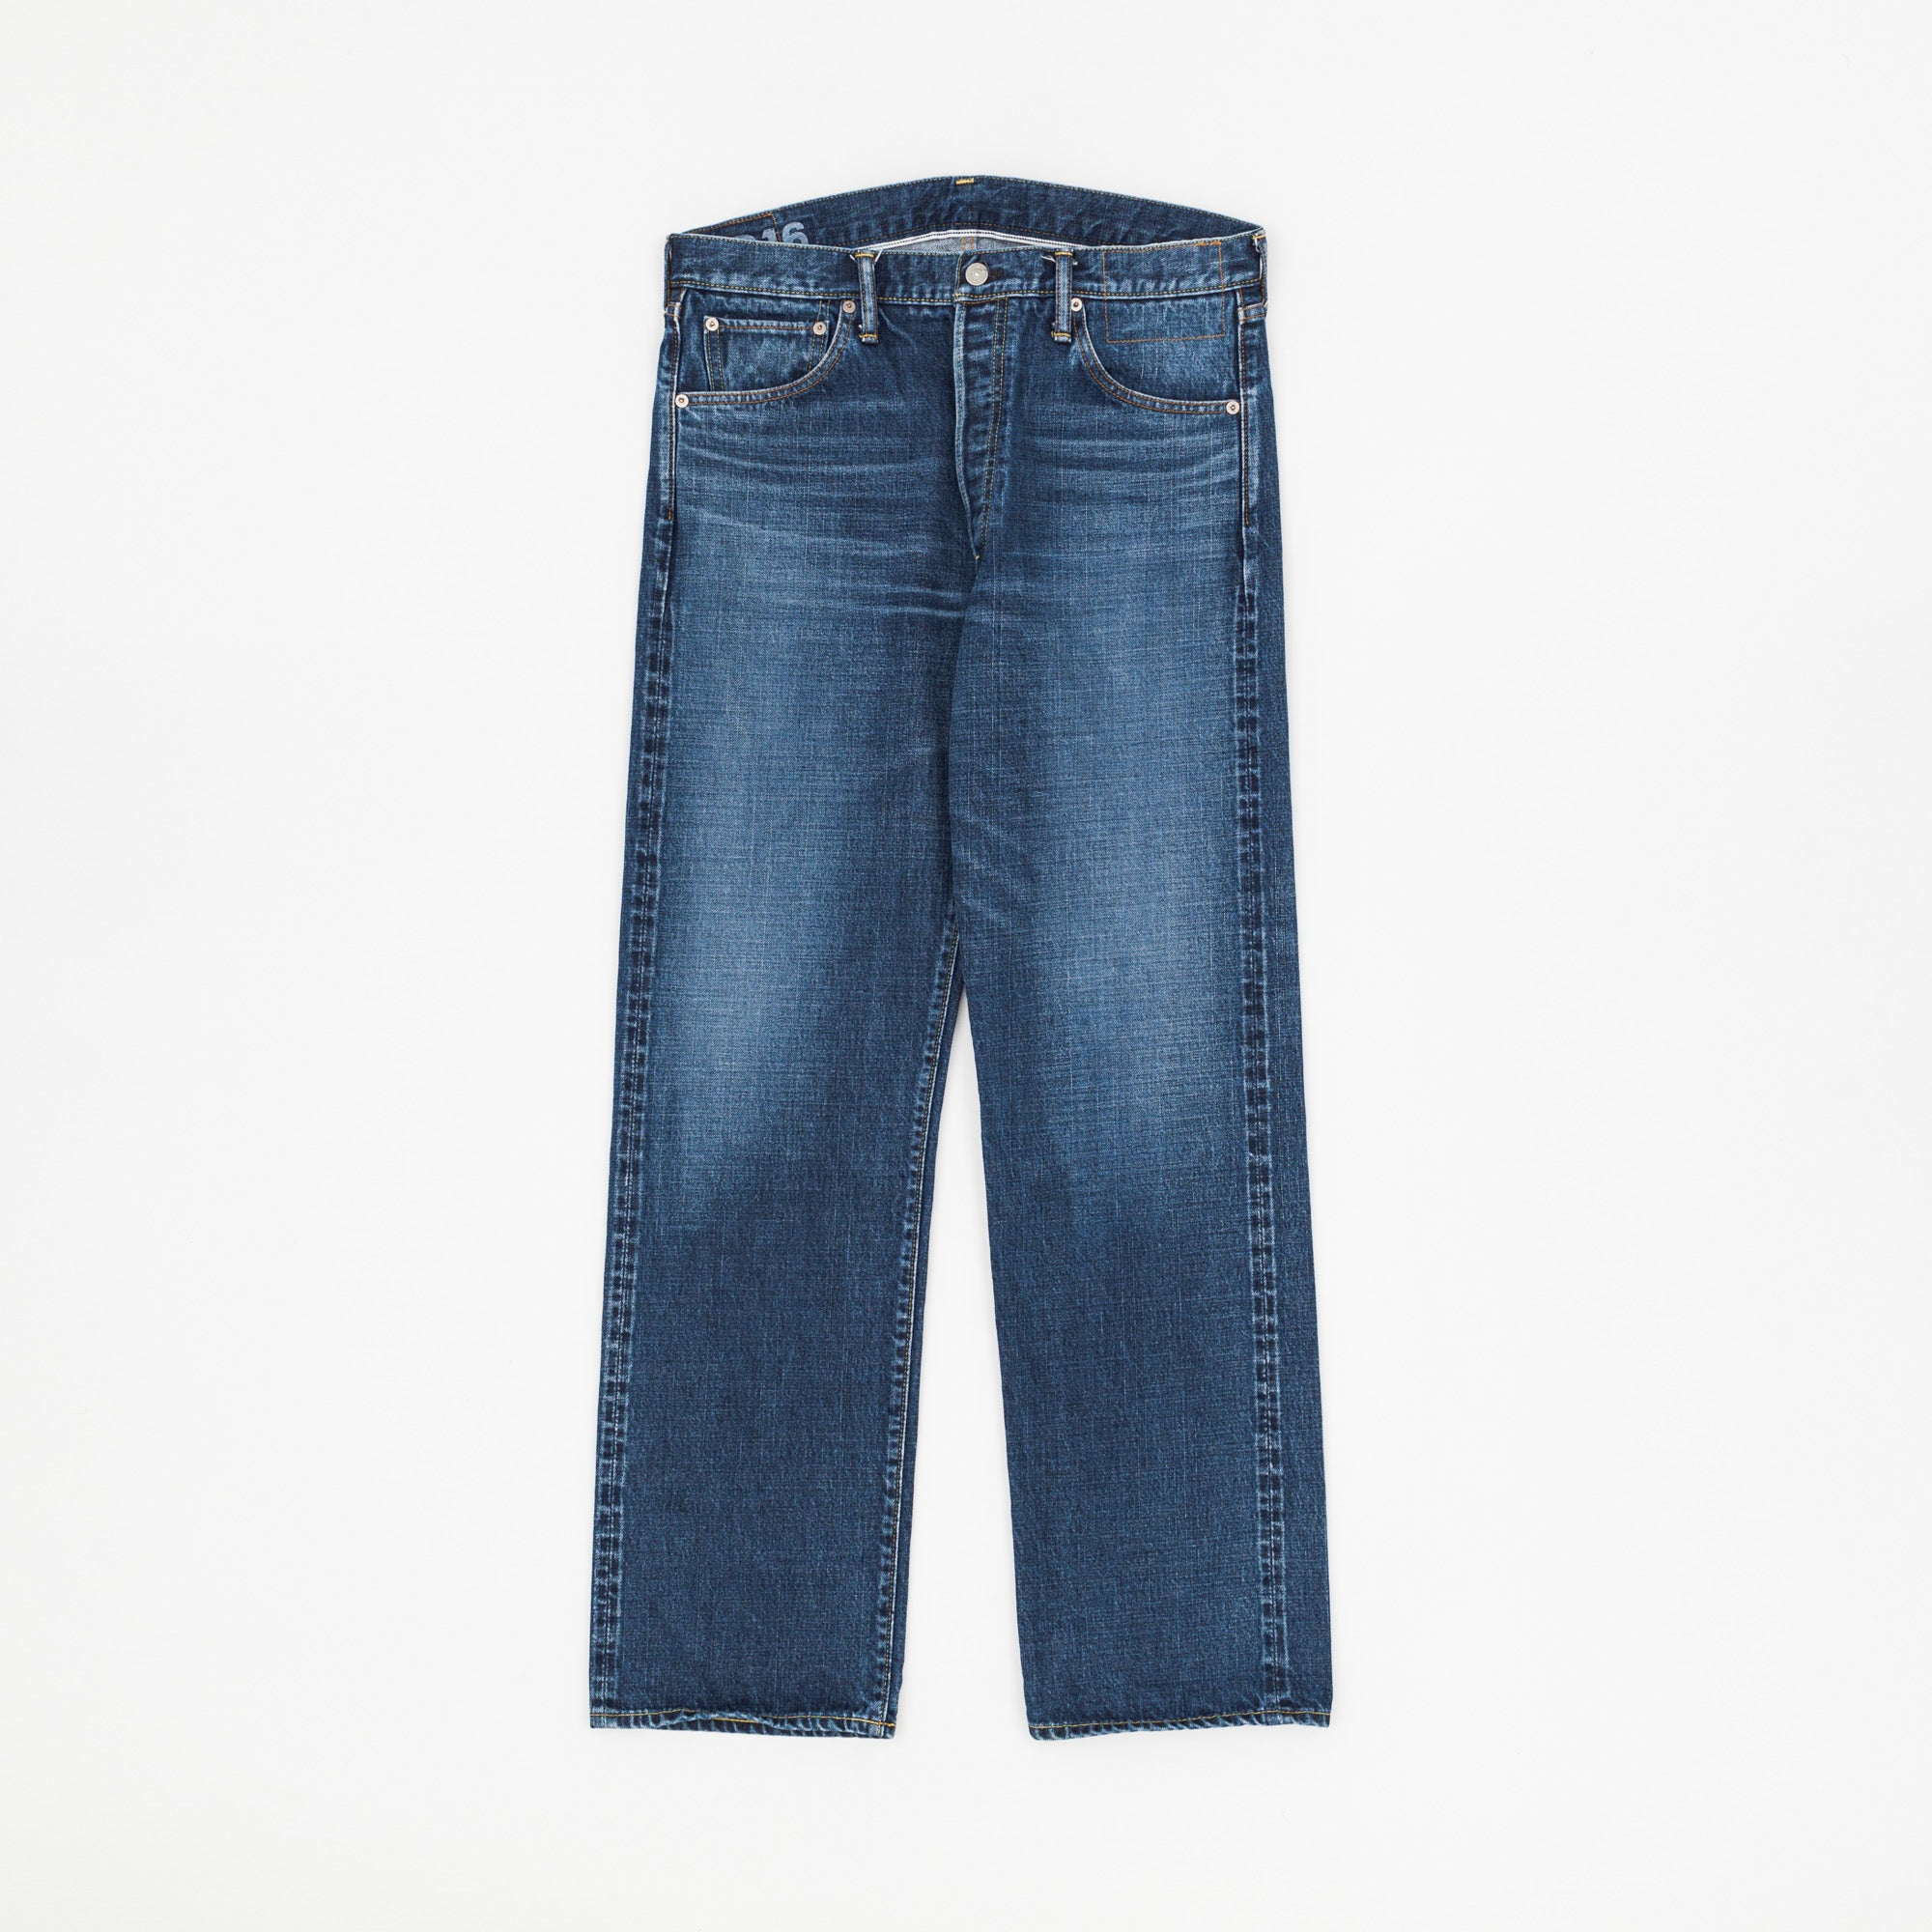 Visvim Social Sculpture 10 Selvedge Denim